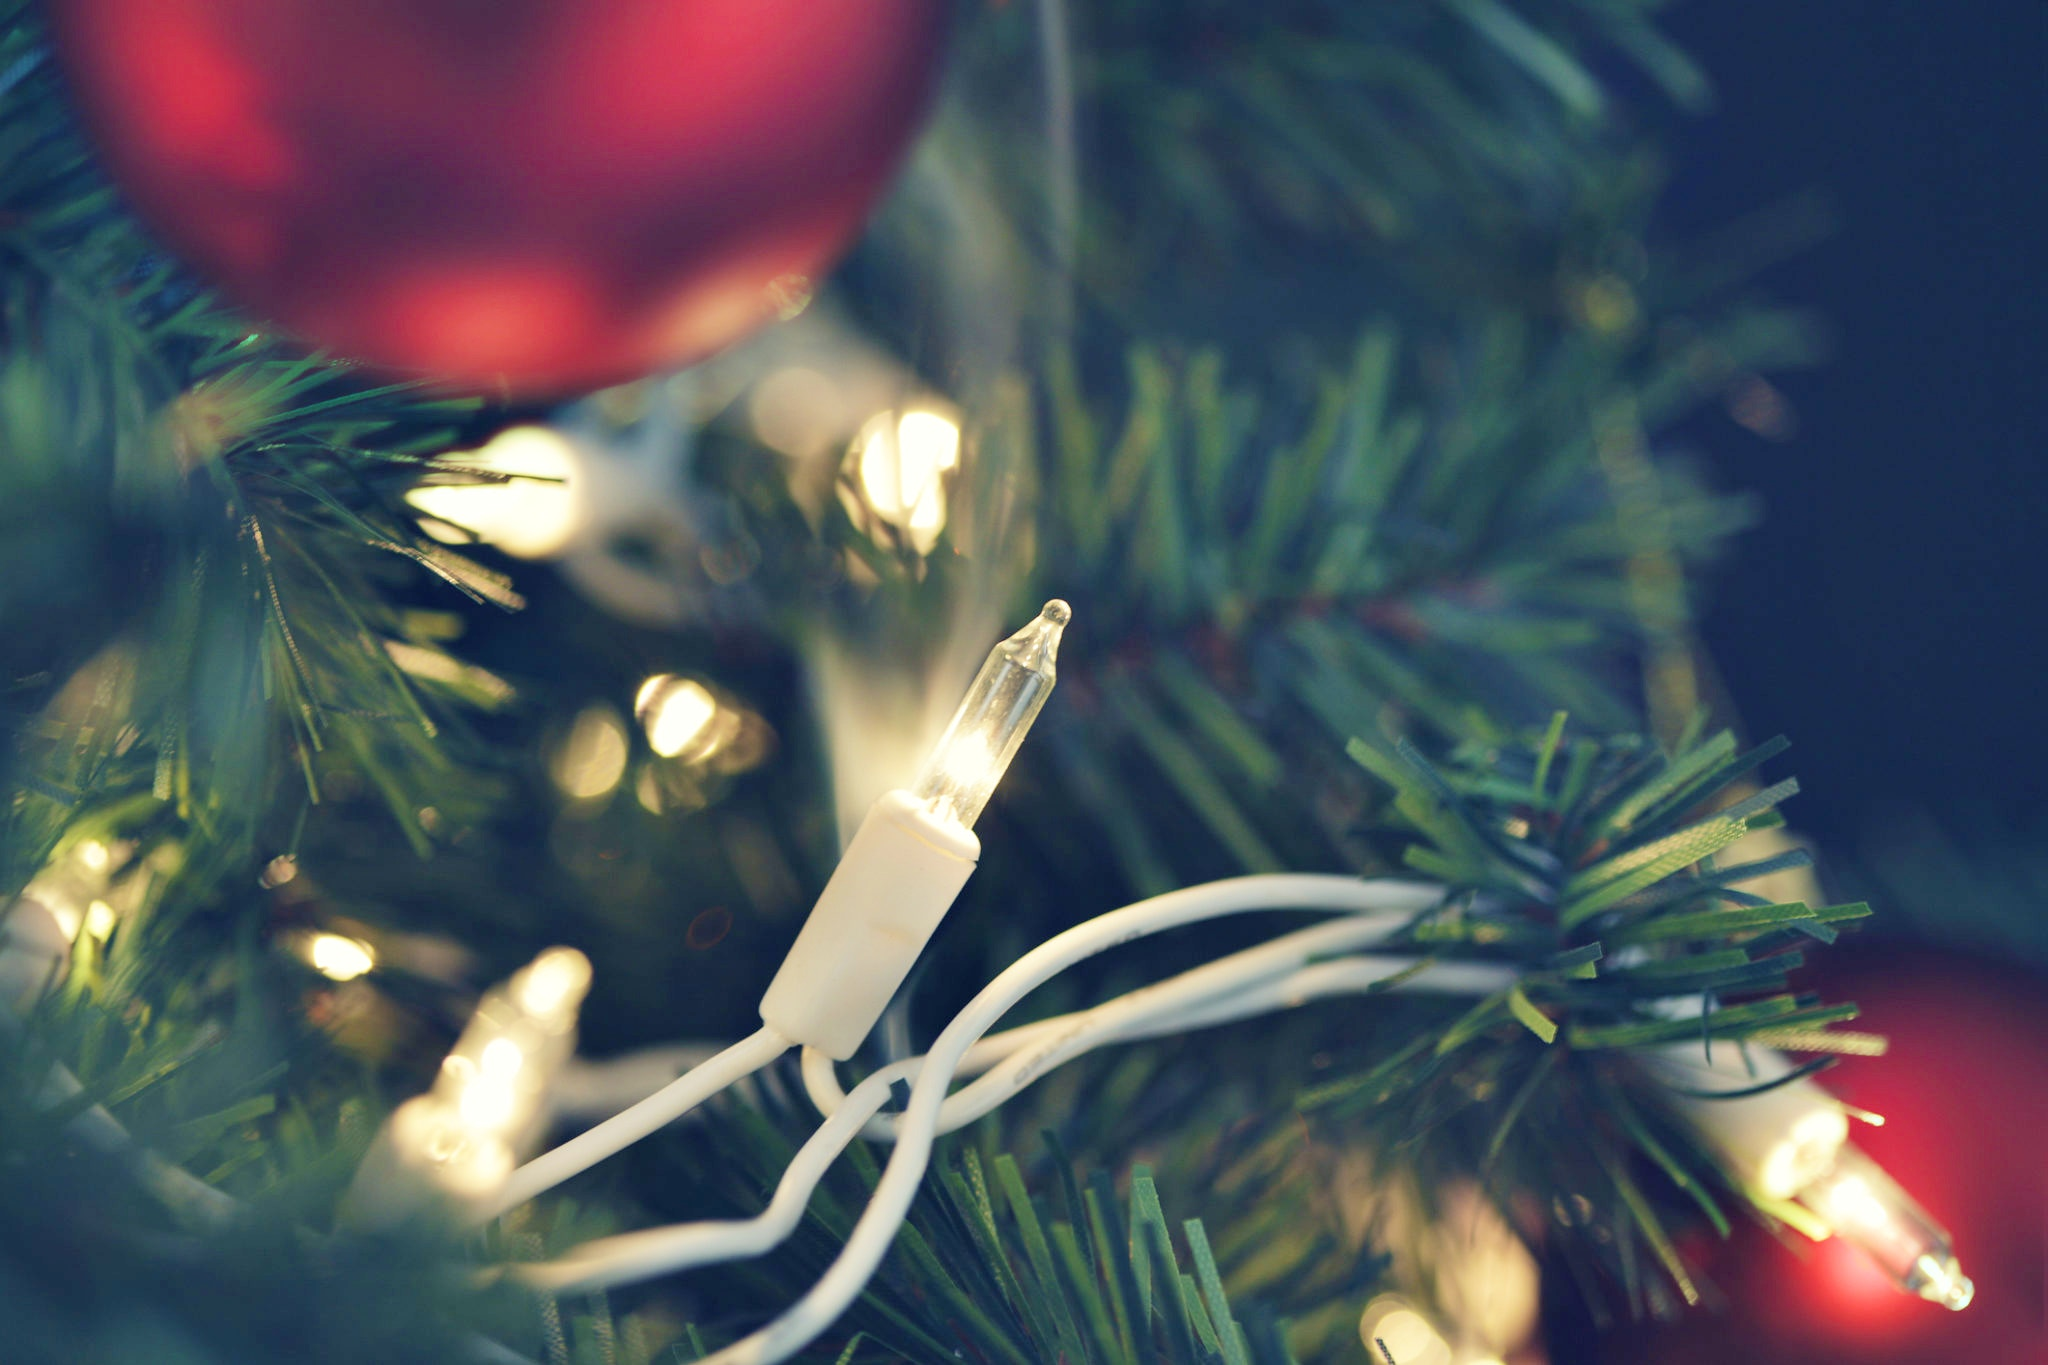 Making your home safer this holiday season